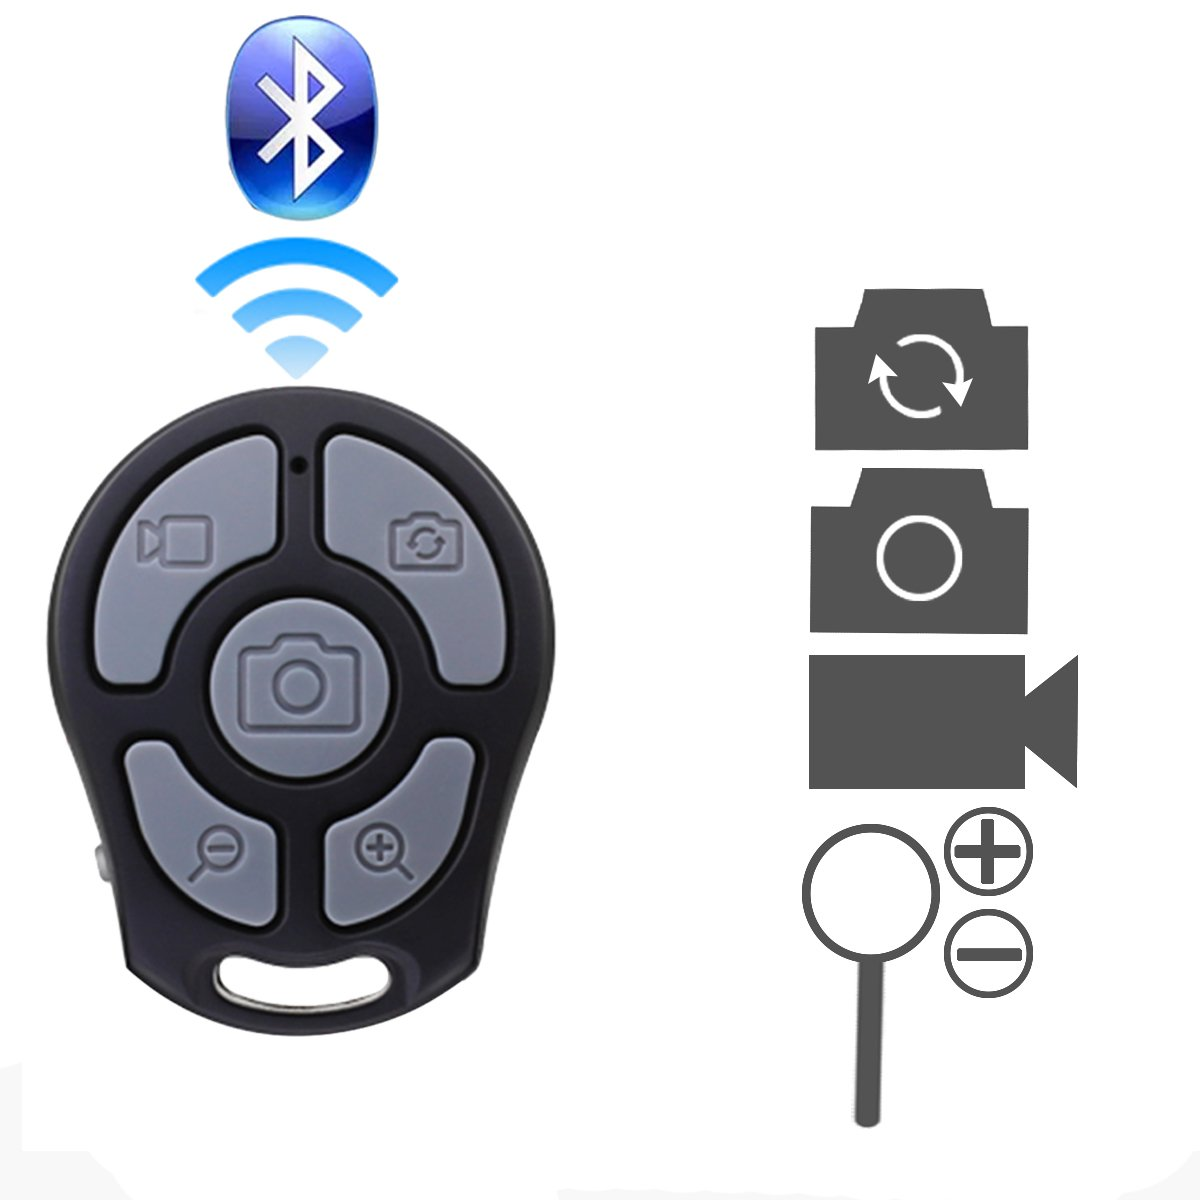 xhorizon TM FL1 Advanced Mini Multifunction Portable Wireless Bluetooth V3.0 Selfie Camera Shutter Remote Controller with Zoom/Video/Camera Switch Functions Compatible with Android iOS (Black)